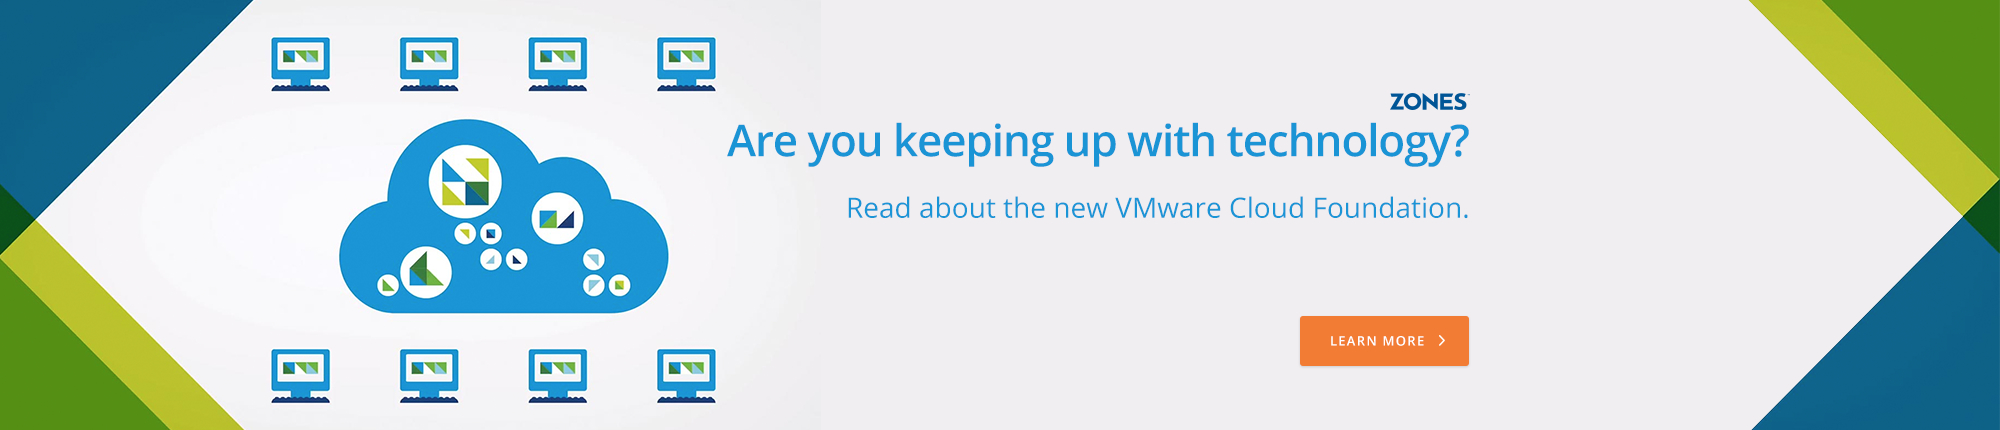 Are you keeping up with technology? Read about the new VMware Cloud Foundation.